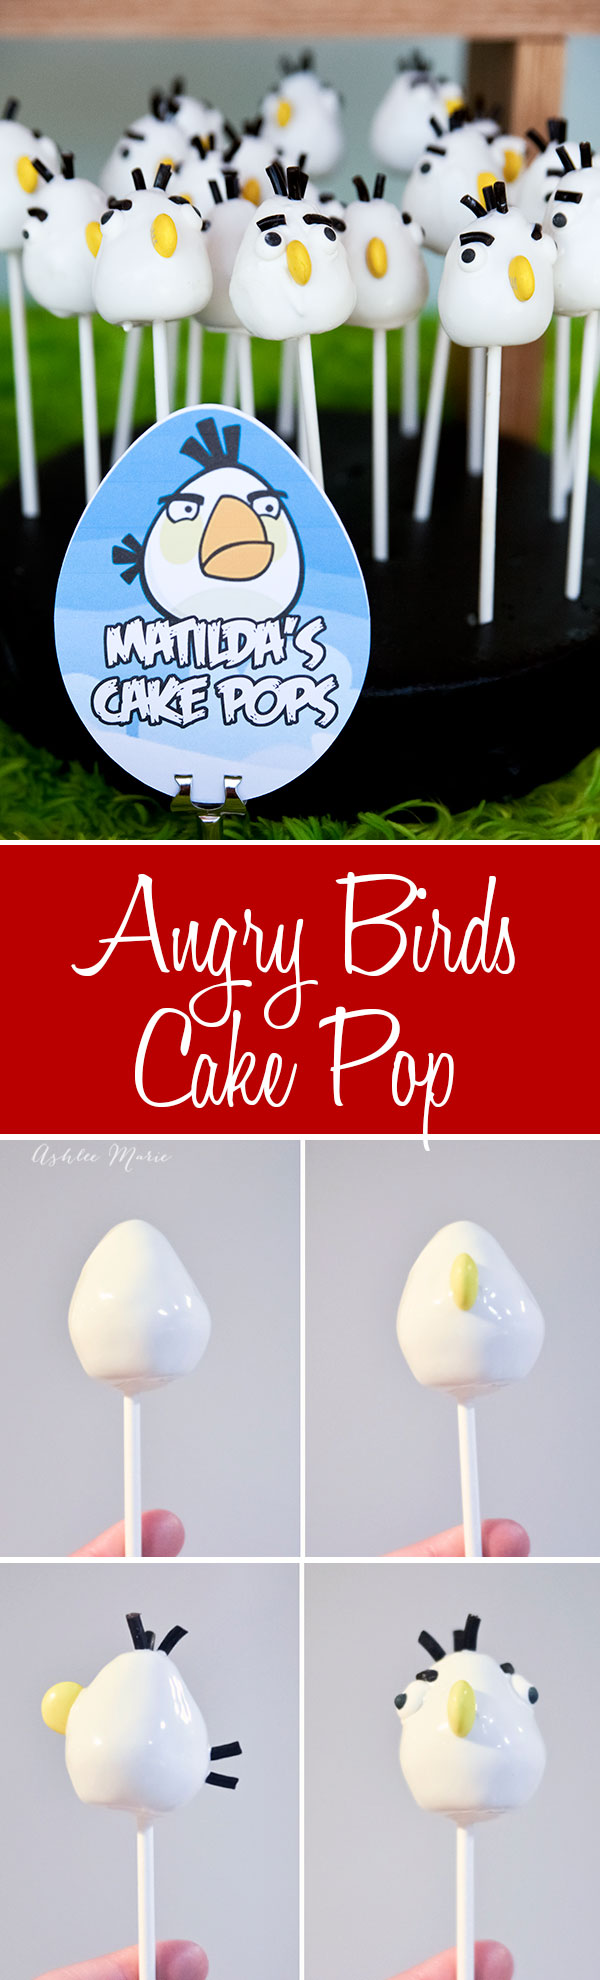 make your own angry bird cake pops, a tutorial to shape, dip and decorate your own bird, you can make this one, matilda or use the same tips to make any of the other birds